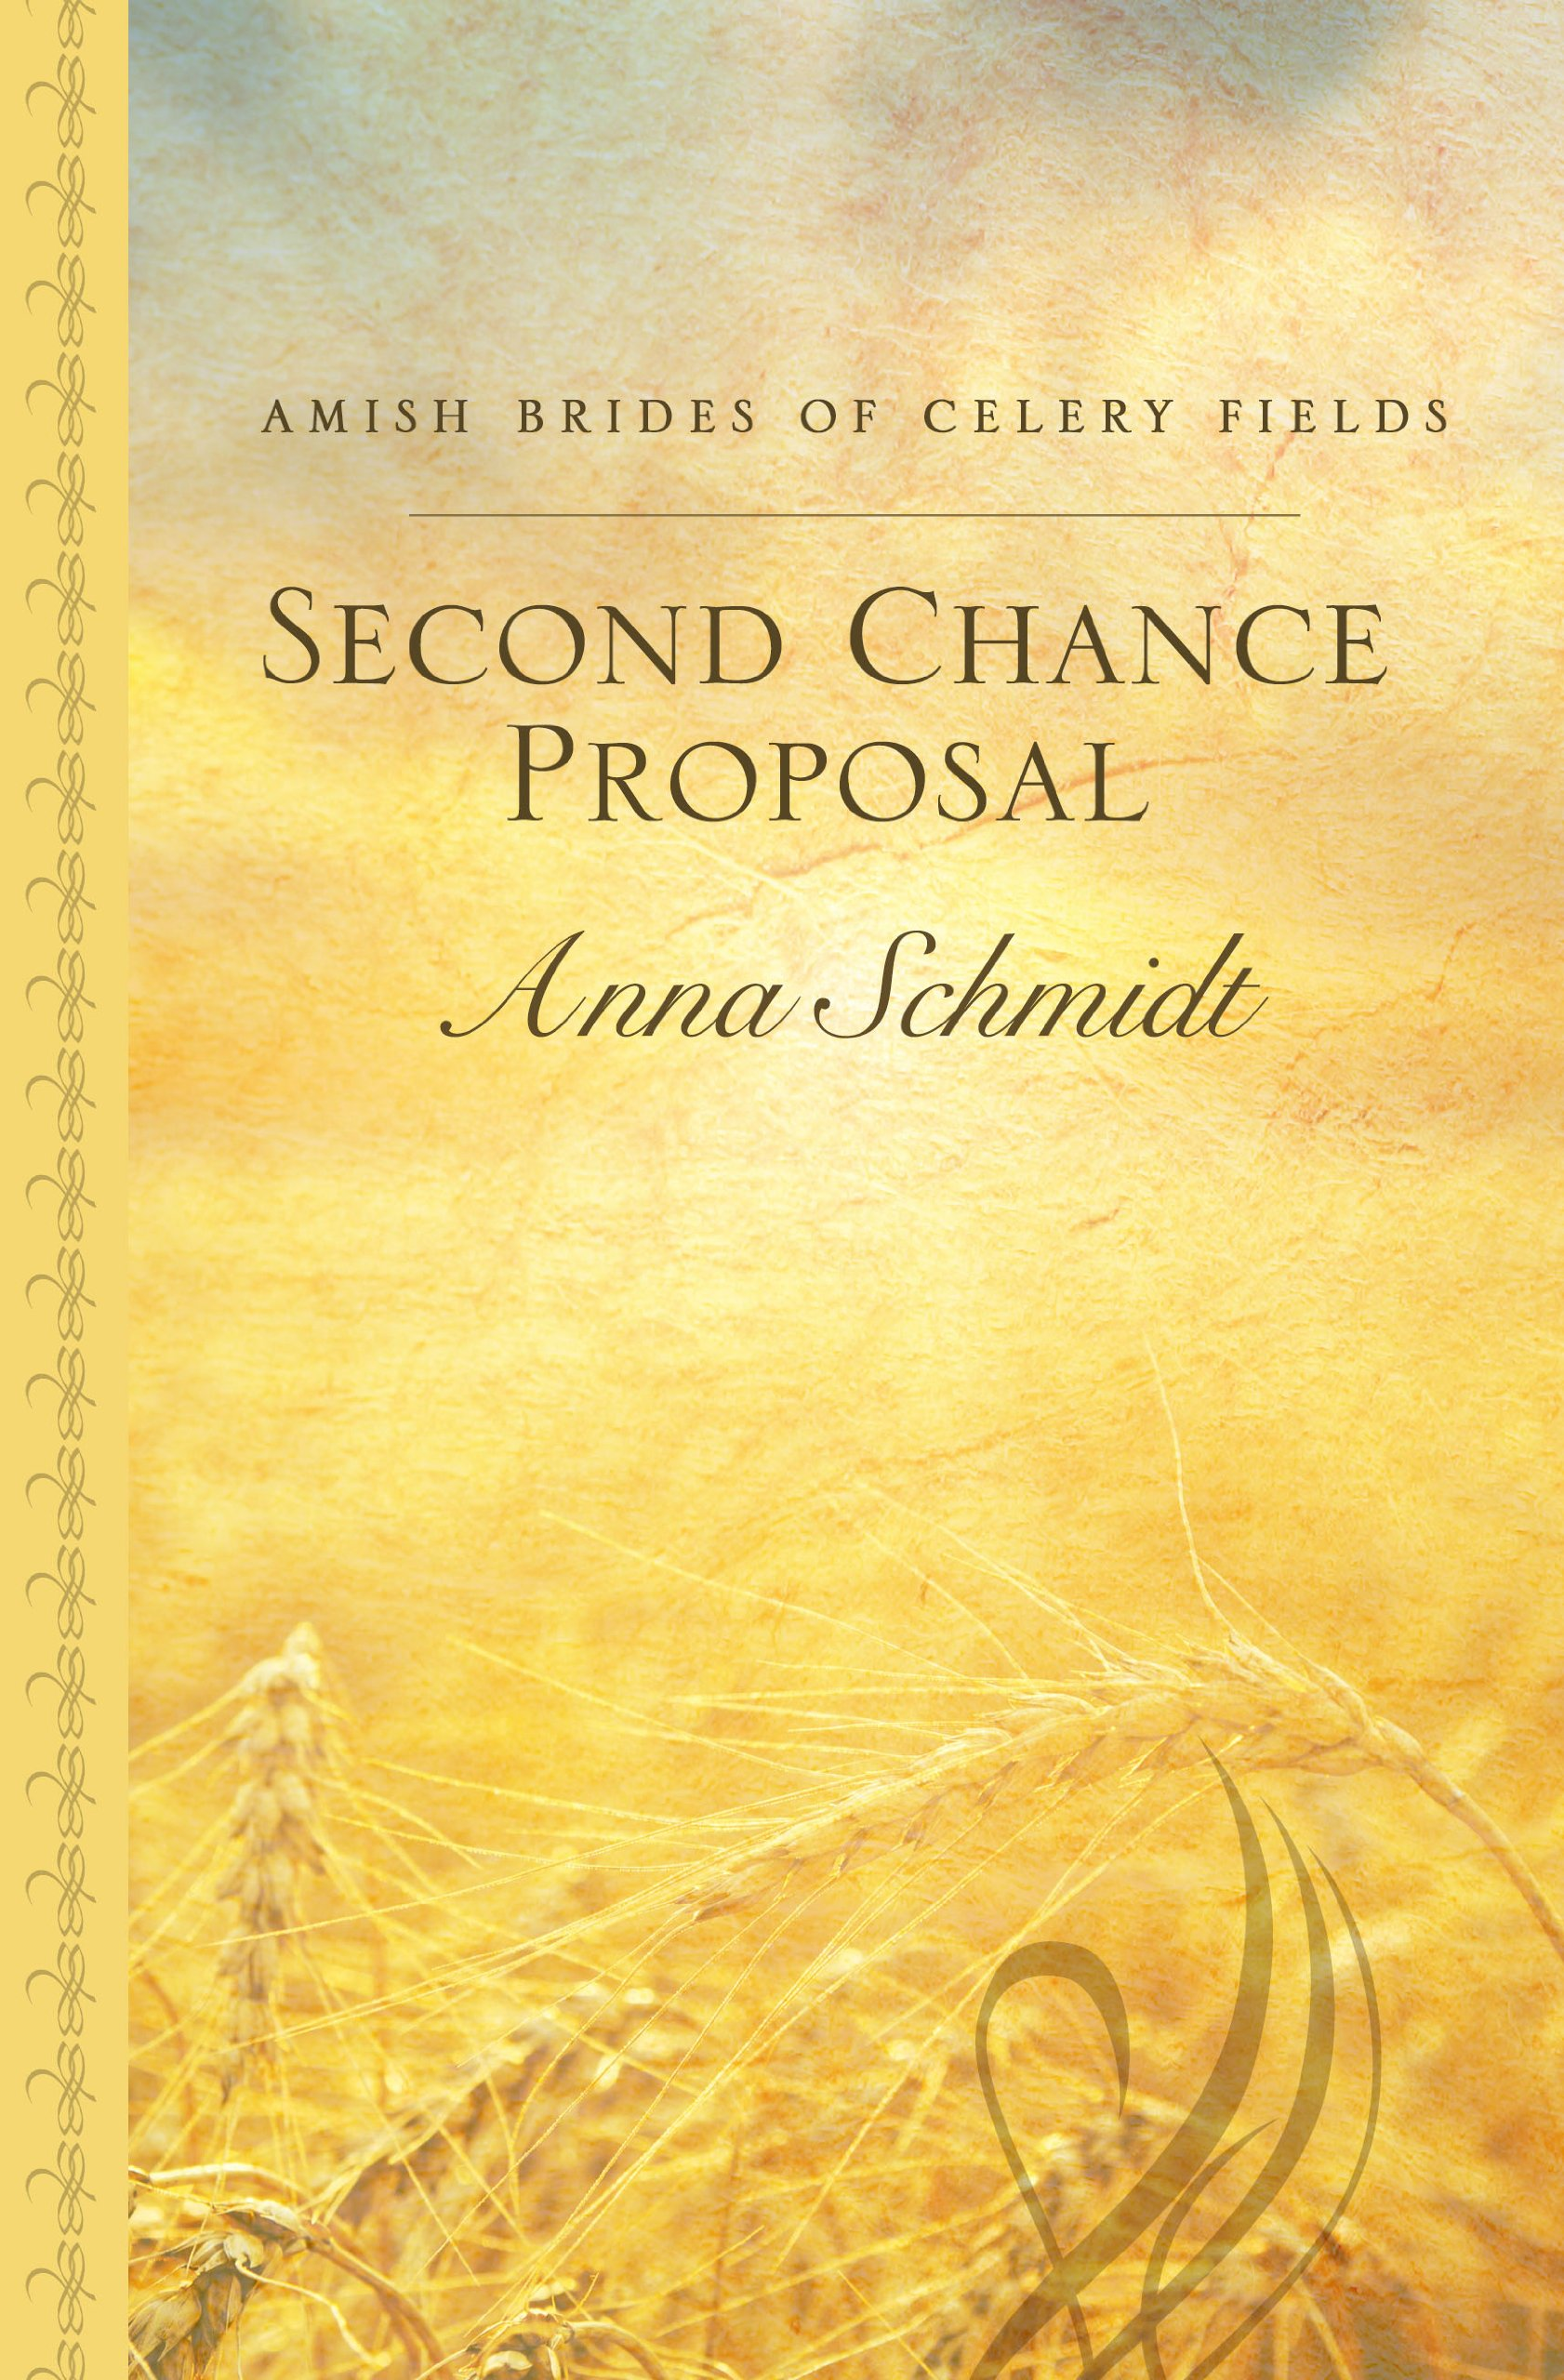 Download Second Chance Proposal (Amish Brides of elery Fields: Thorndike Large Print Gentle Romance) ebook